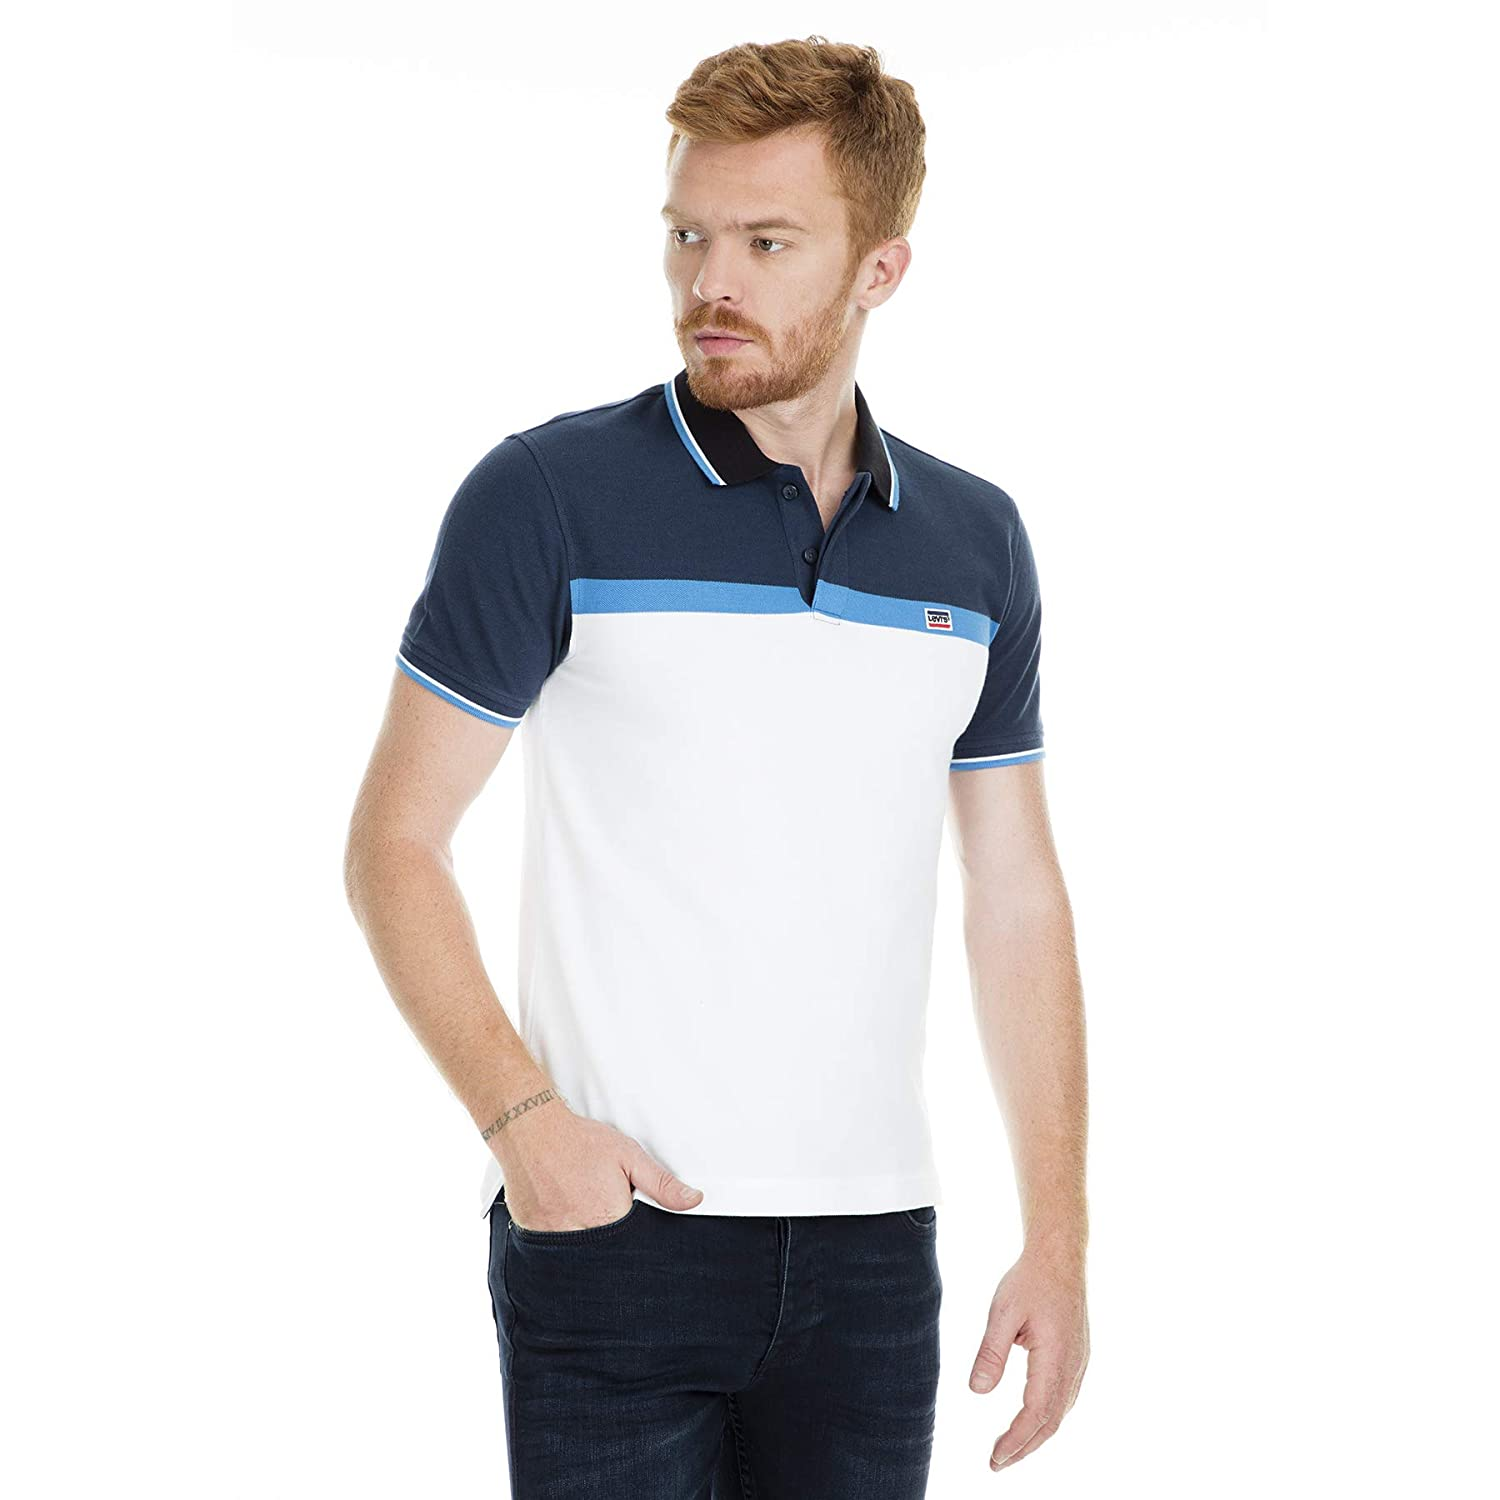 Levis Polo Camiseta para Hombre, Men T-Shirt 81852/M: Amazon.es ...